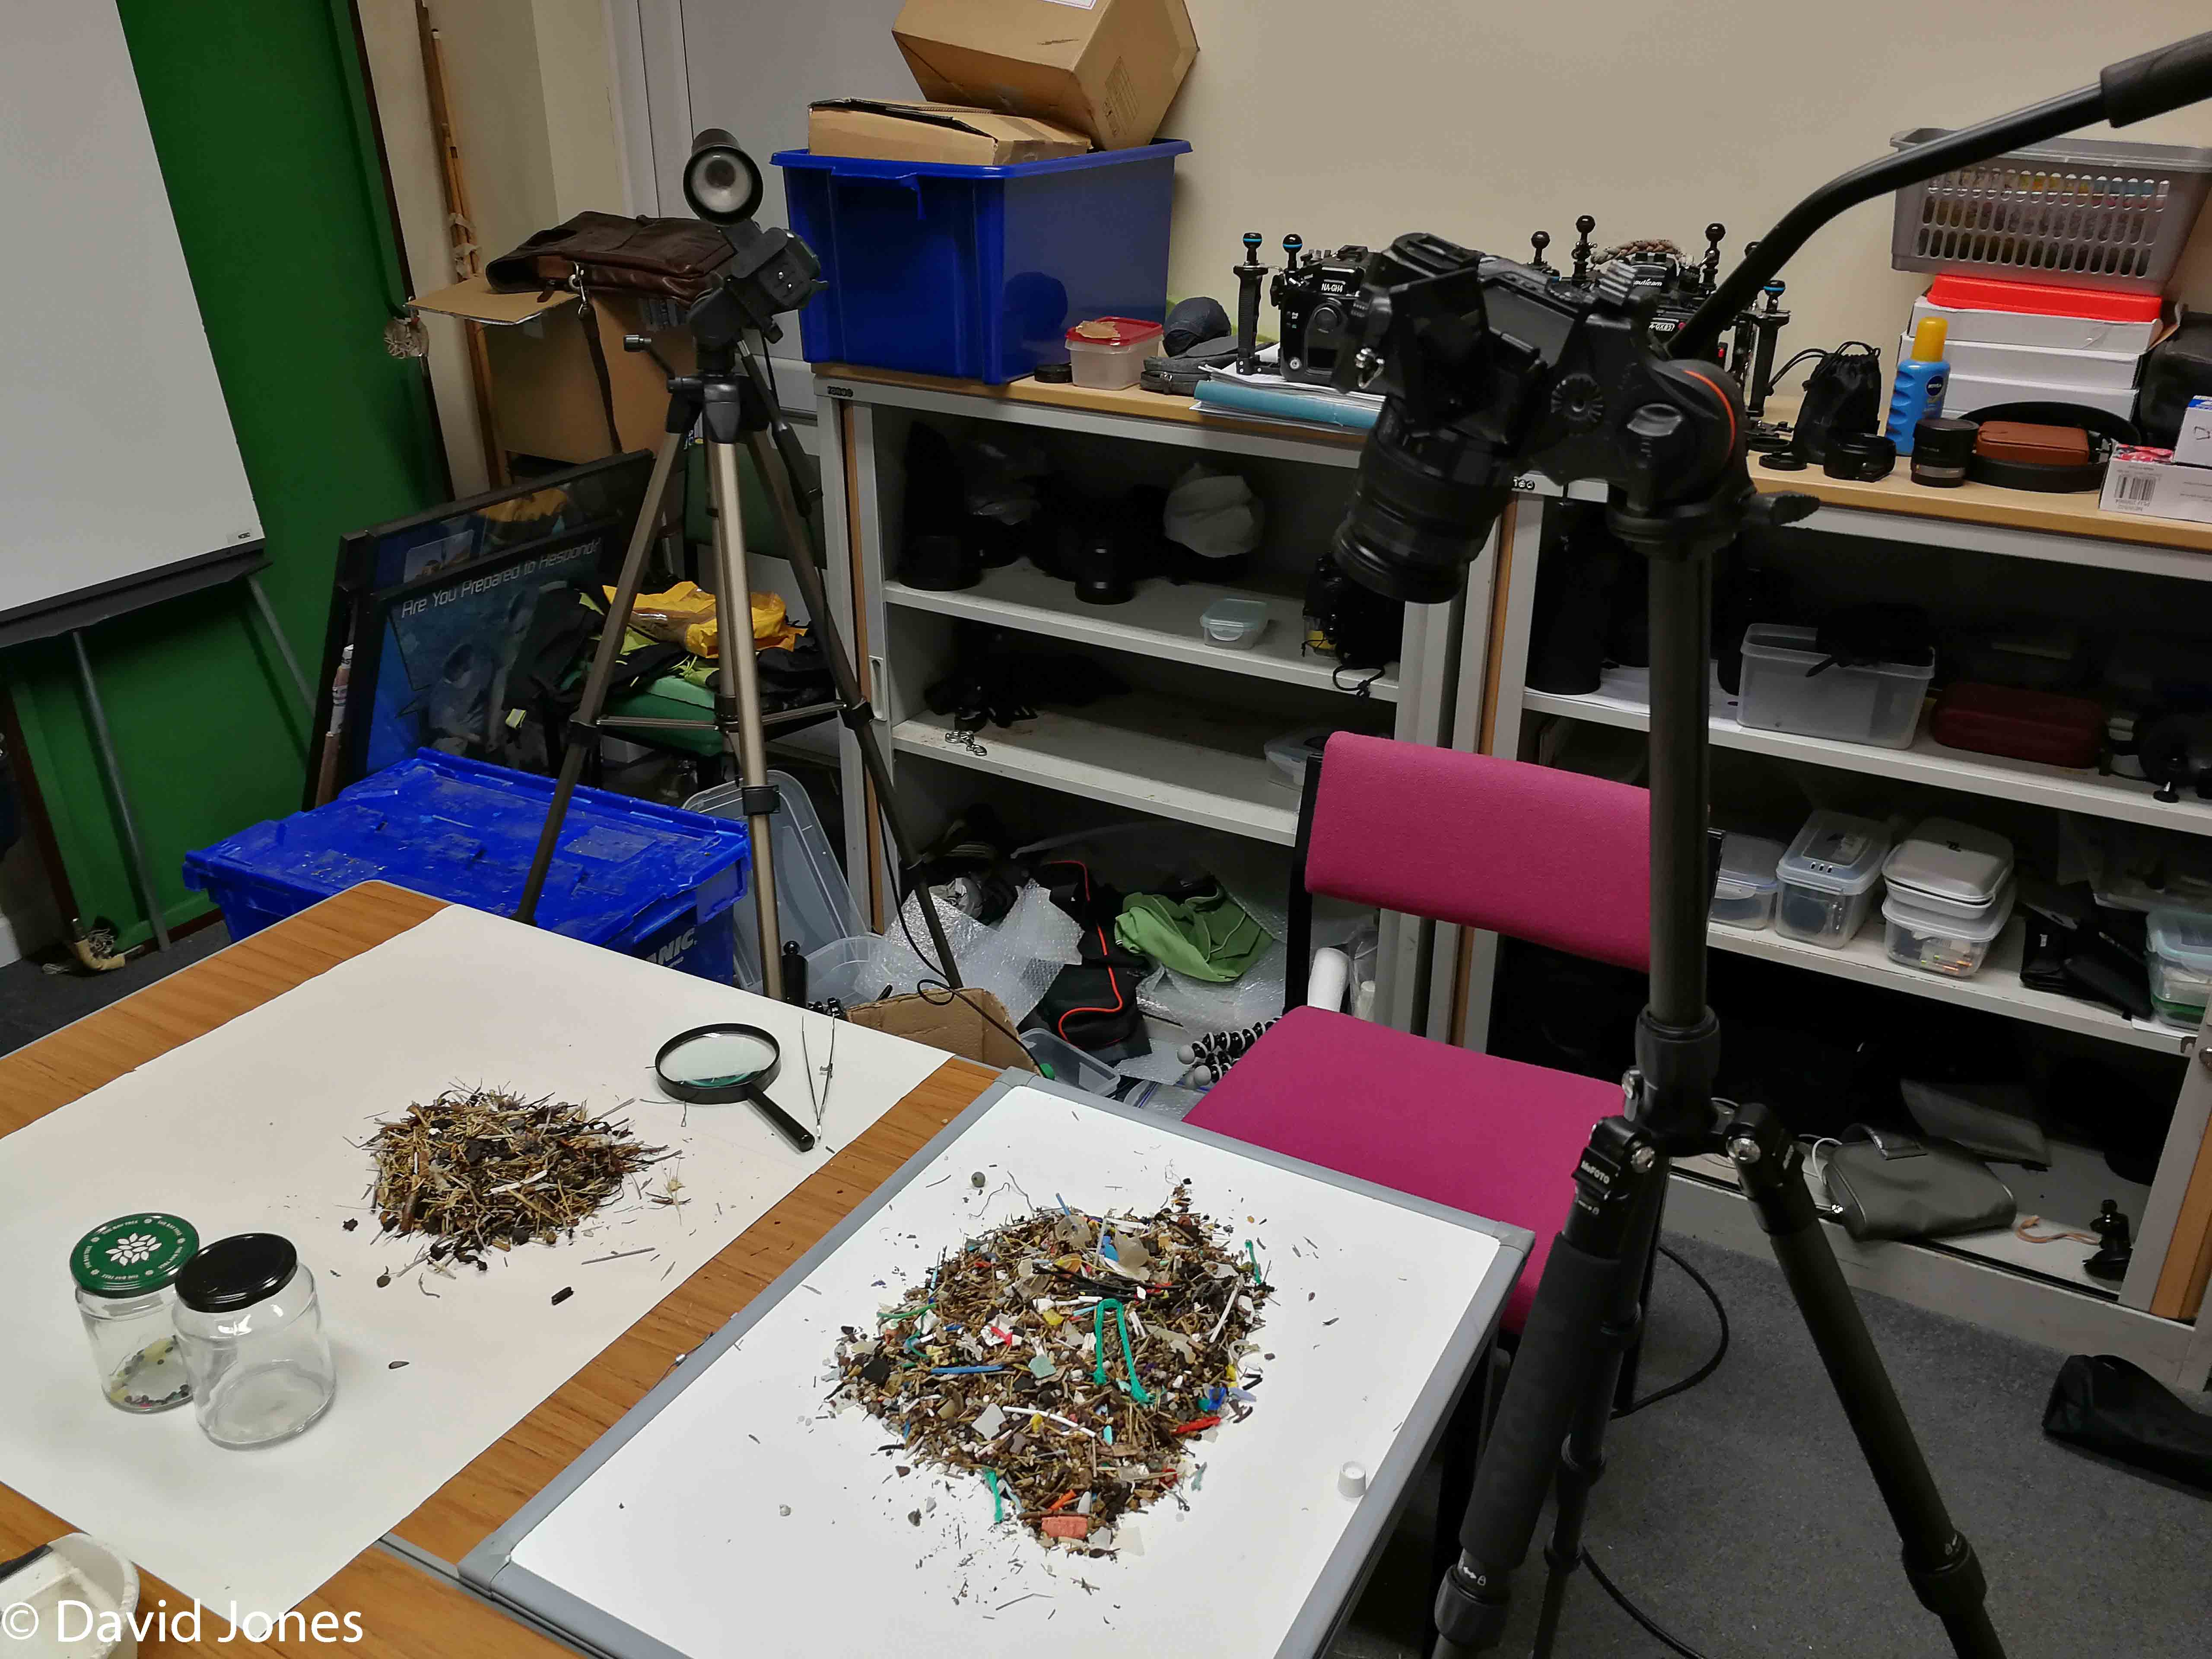 Sorting through the microplastics